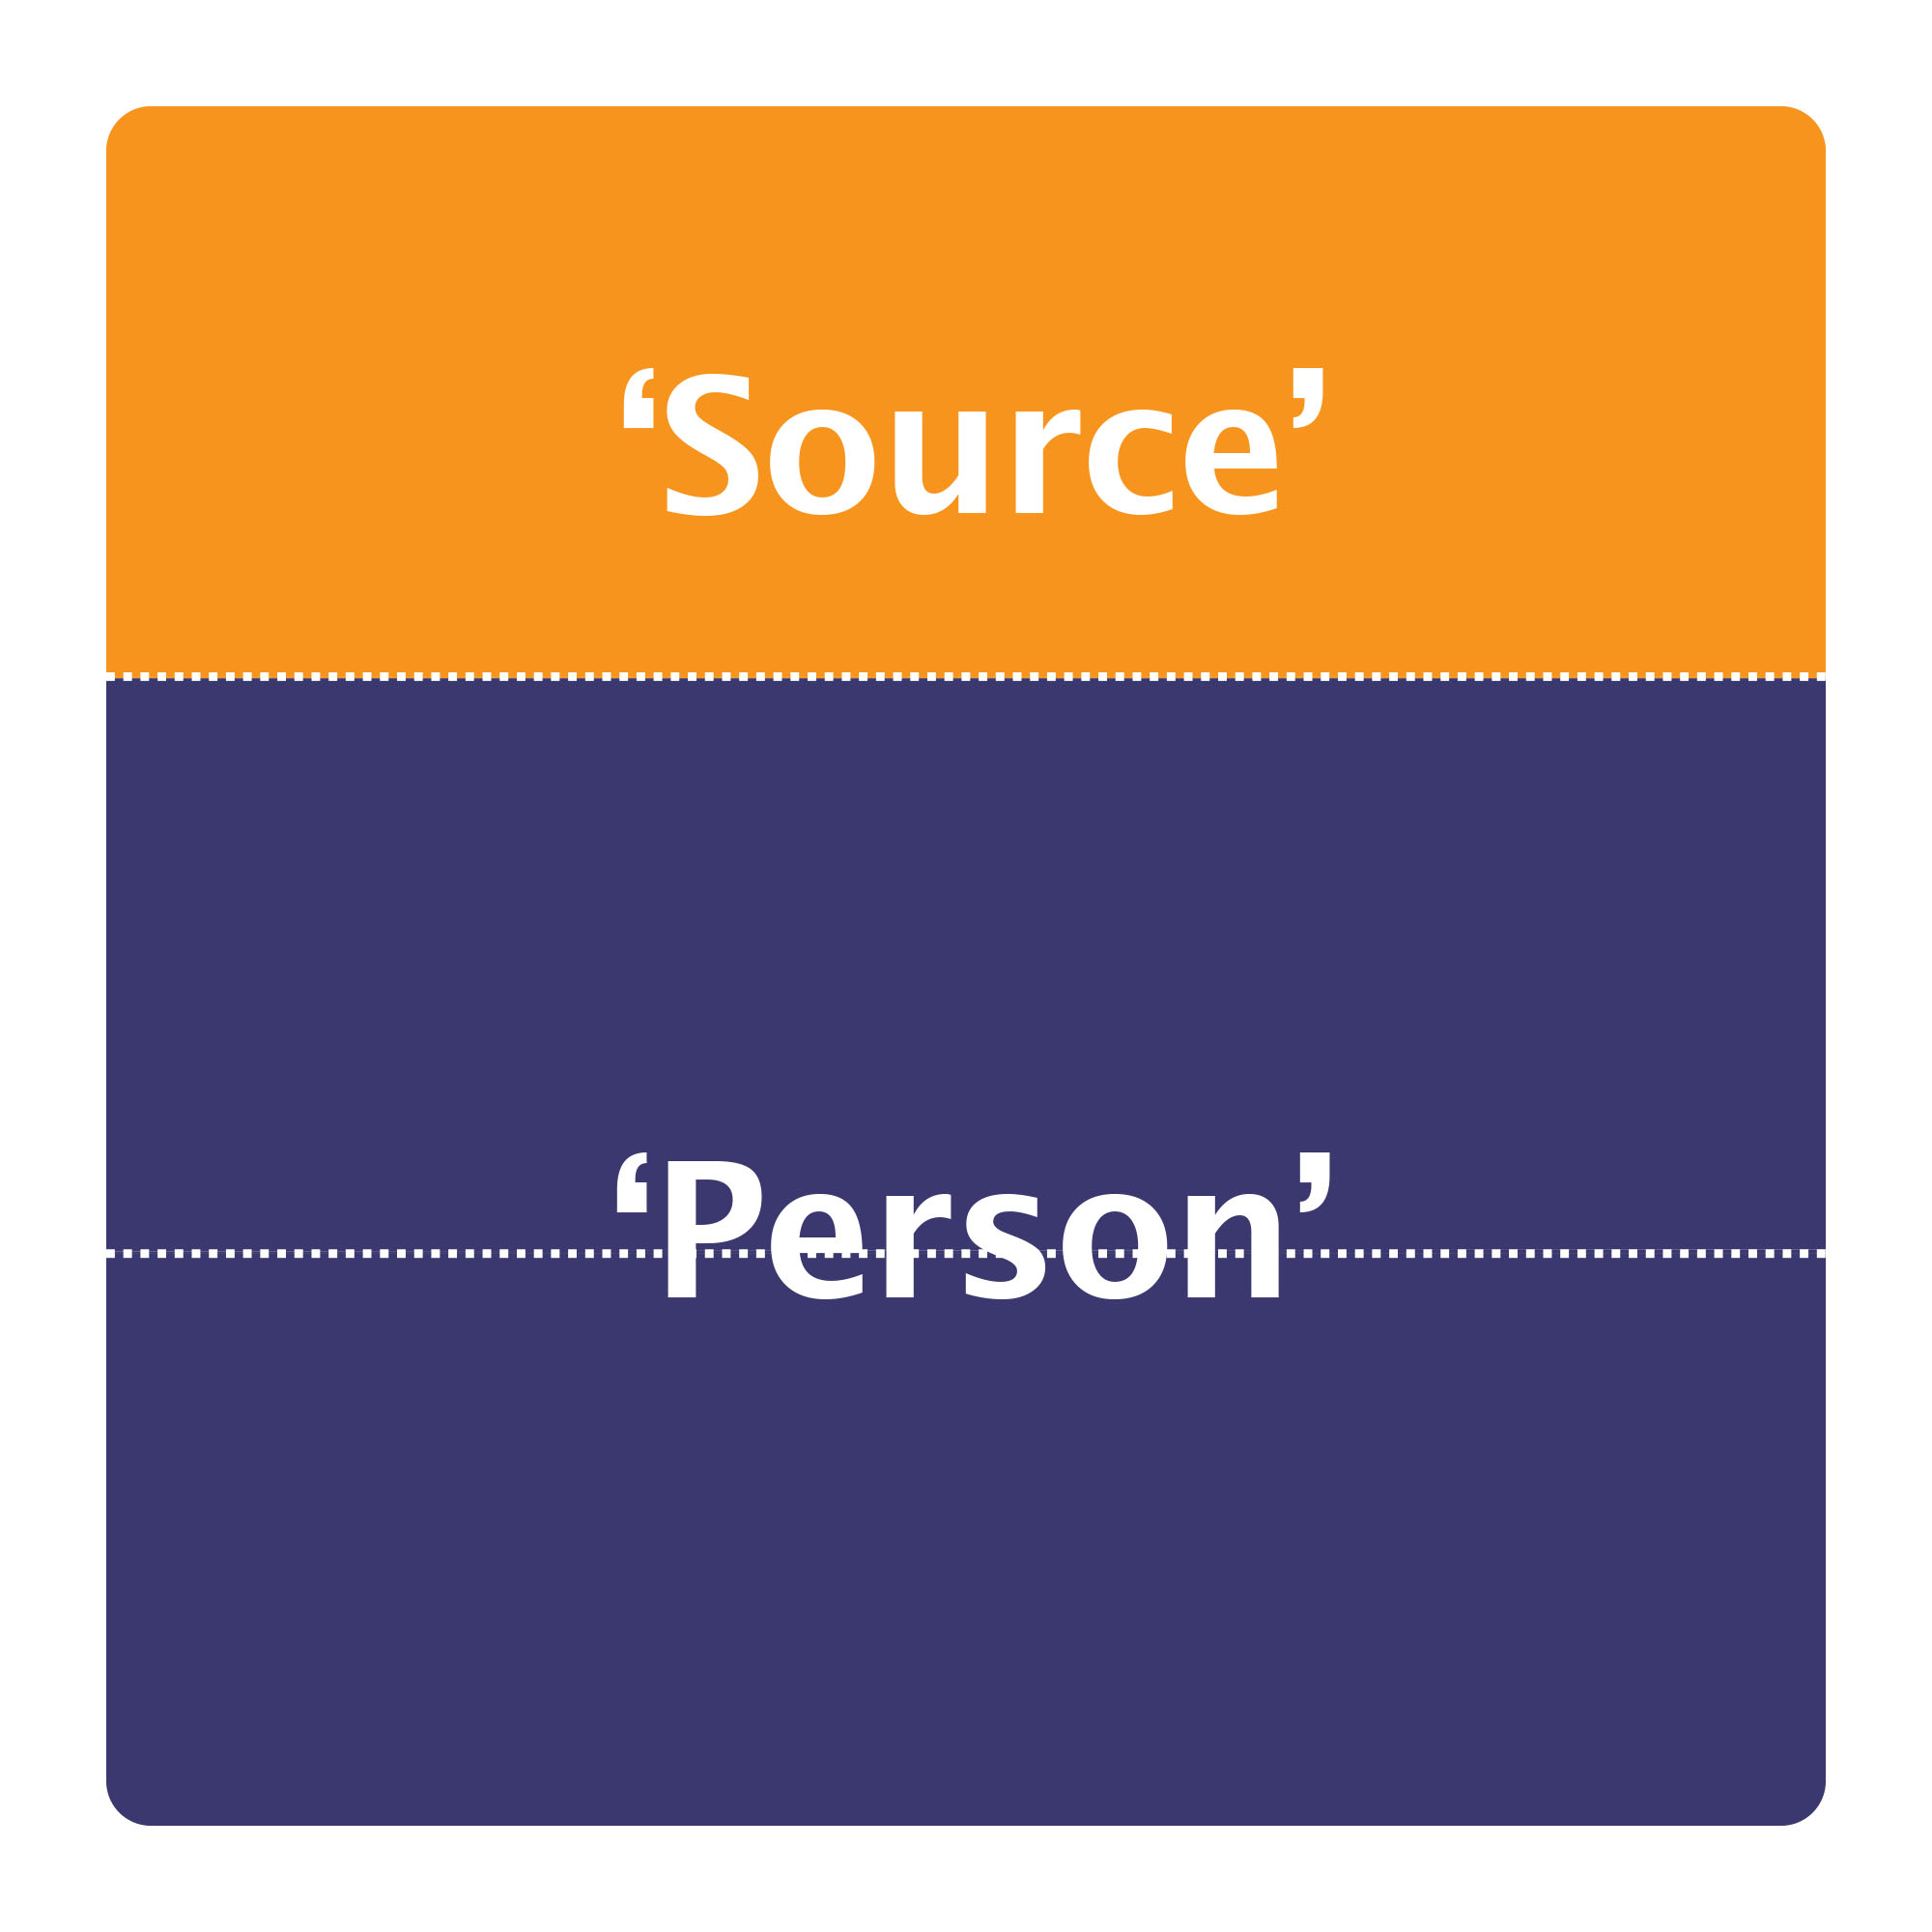 01-Person-and-source